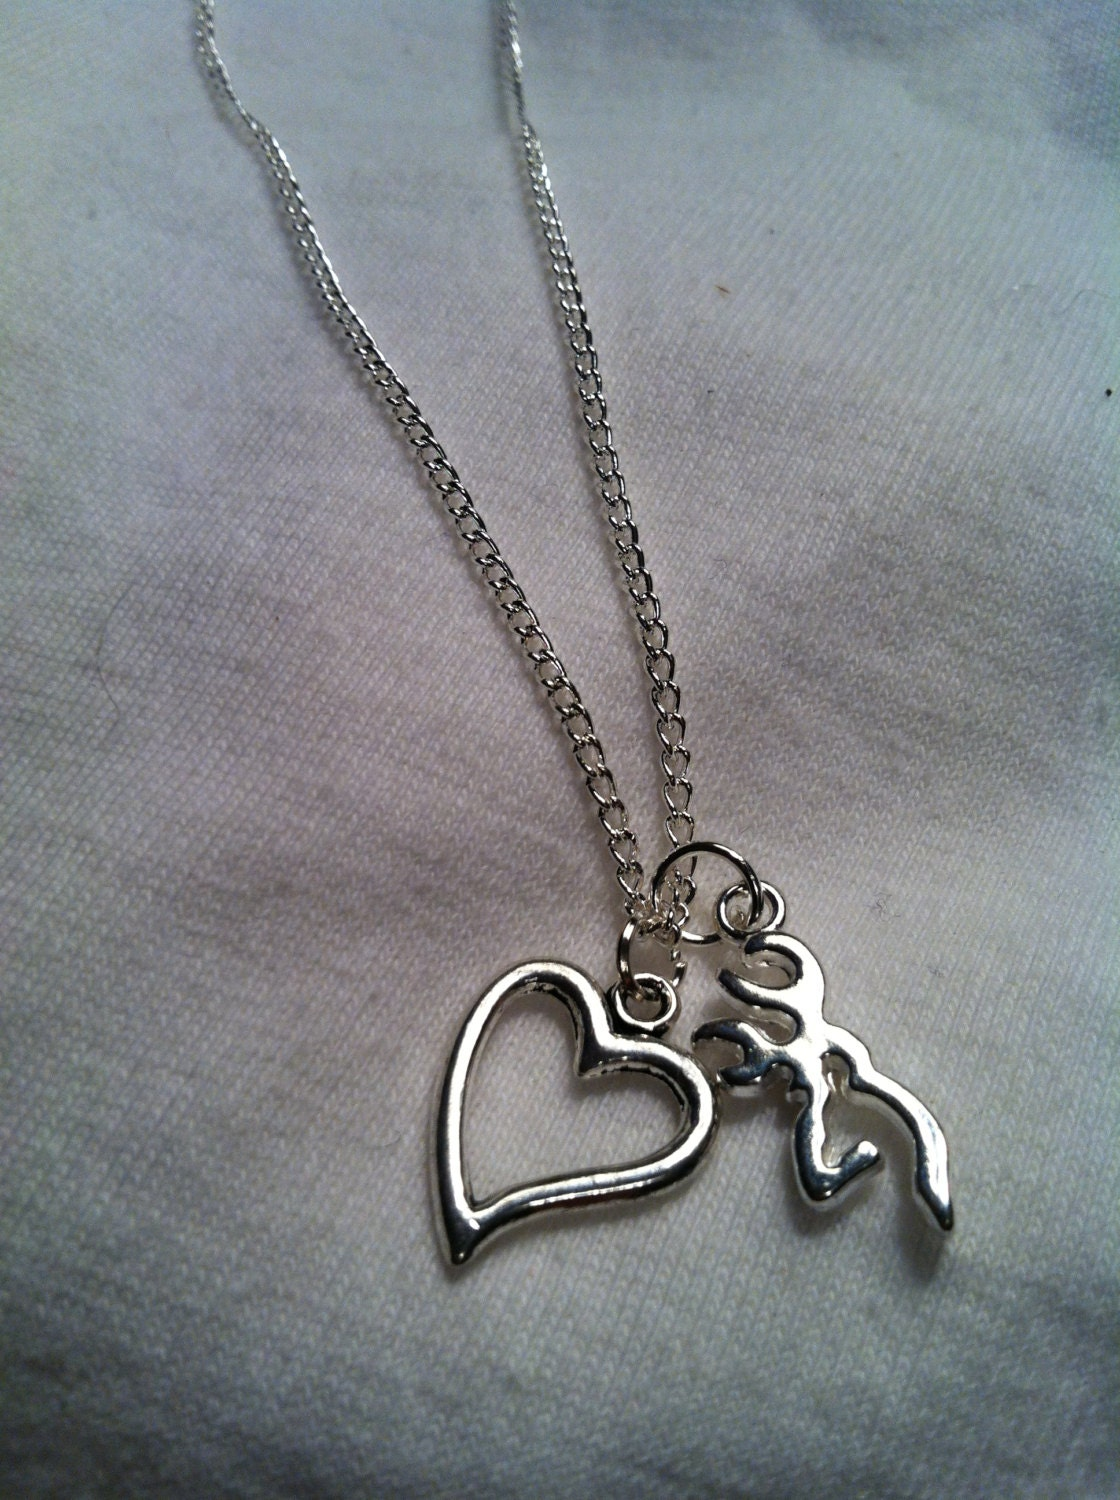 silver necklace browning necklace accessory by